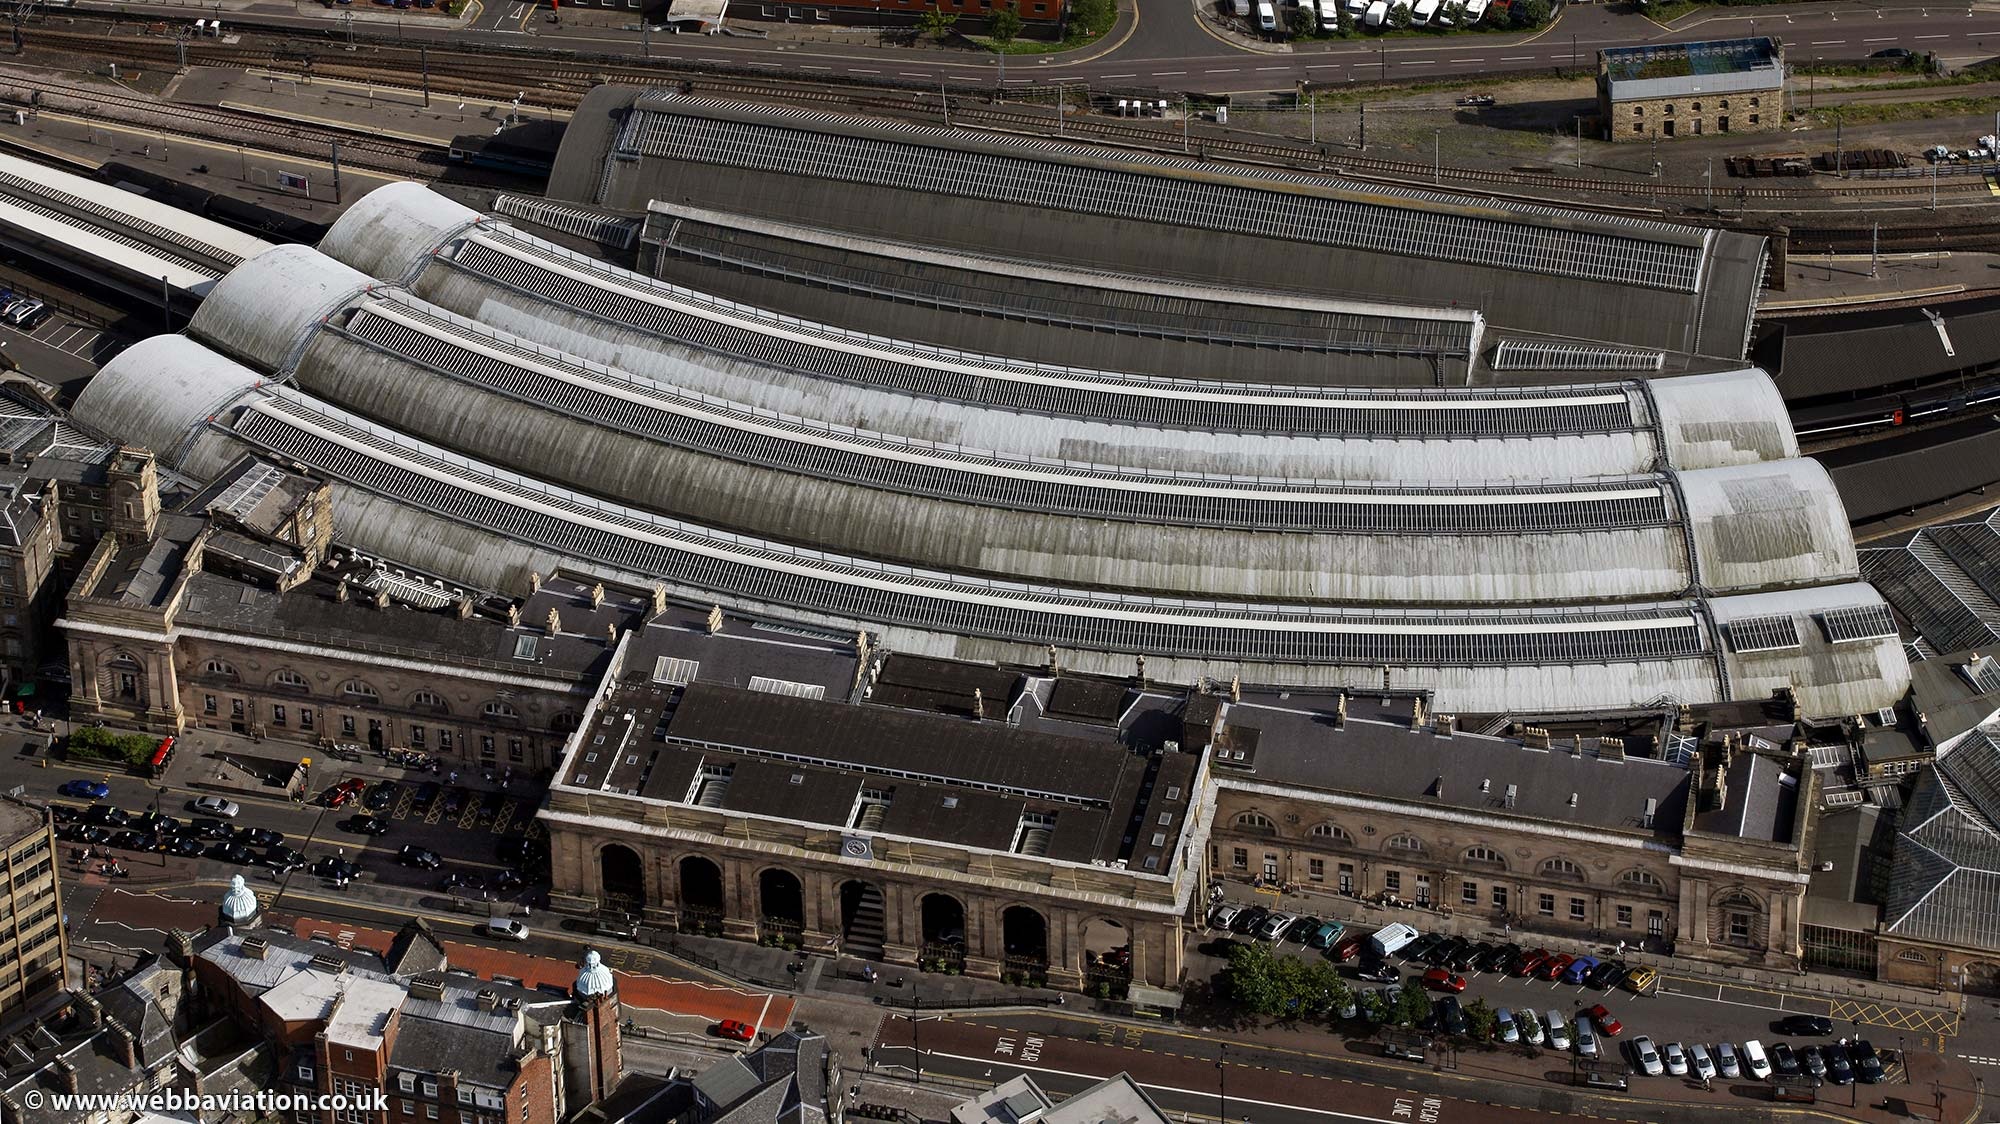 Newcastle Central Railway  Station  Newcastle upon TyneTyne and Wear aerial photograph